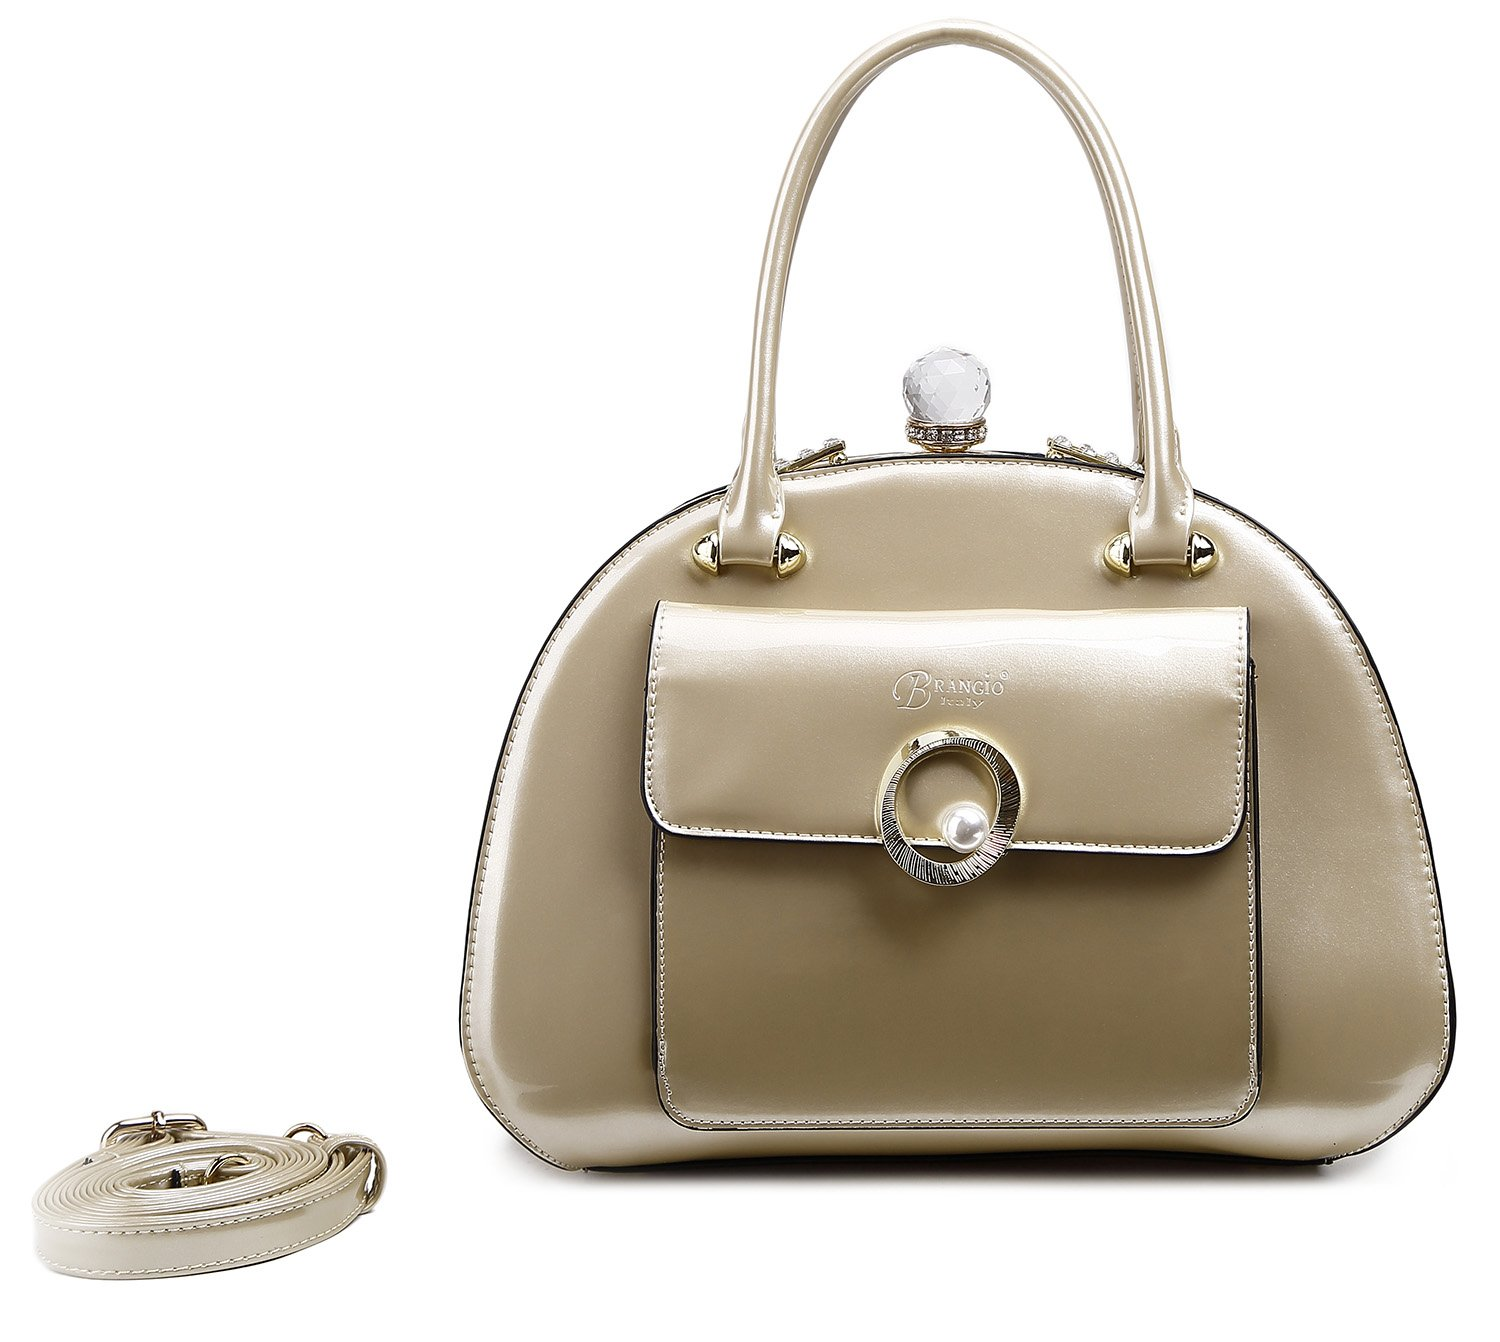 8319e44145bf Brangio Italy Pearl Shine Women's Top Handle Clasp Shoulder Handbag ...